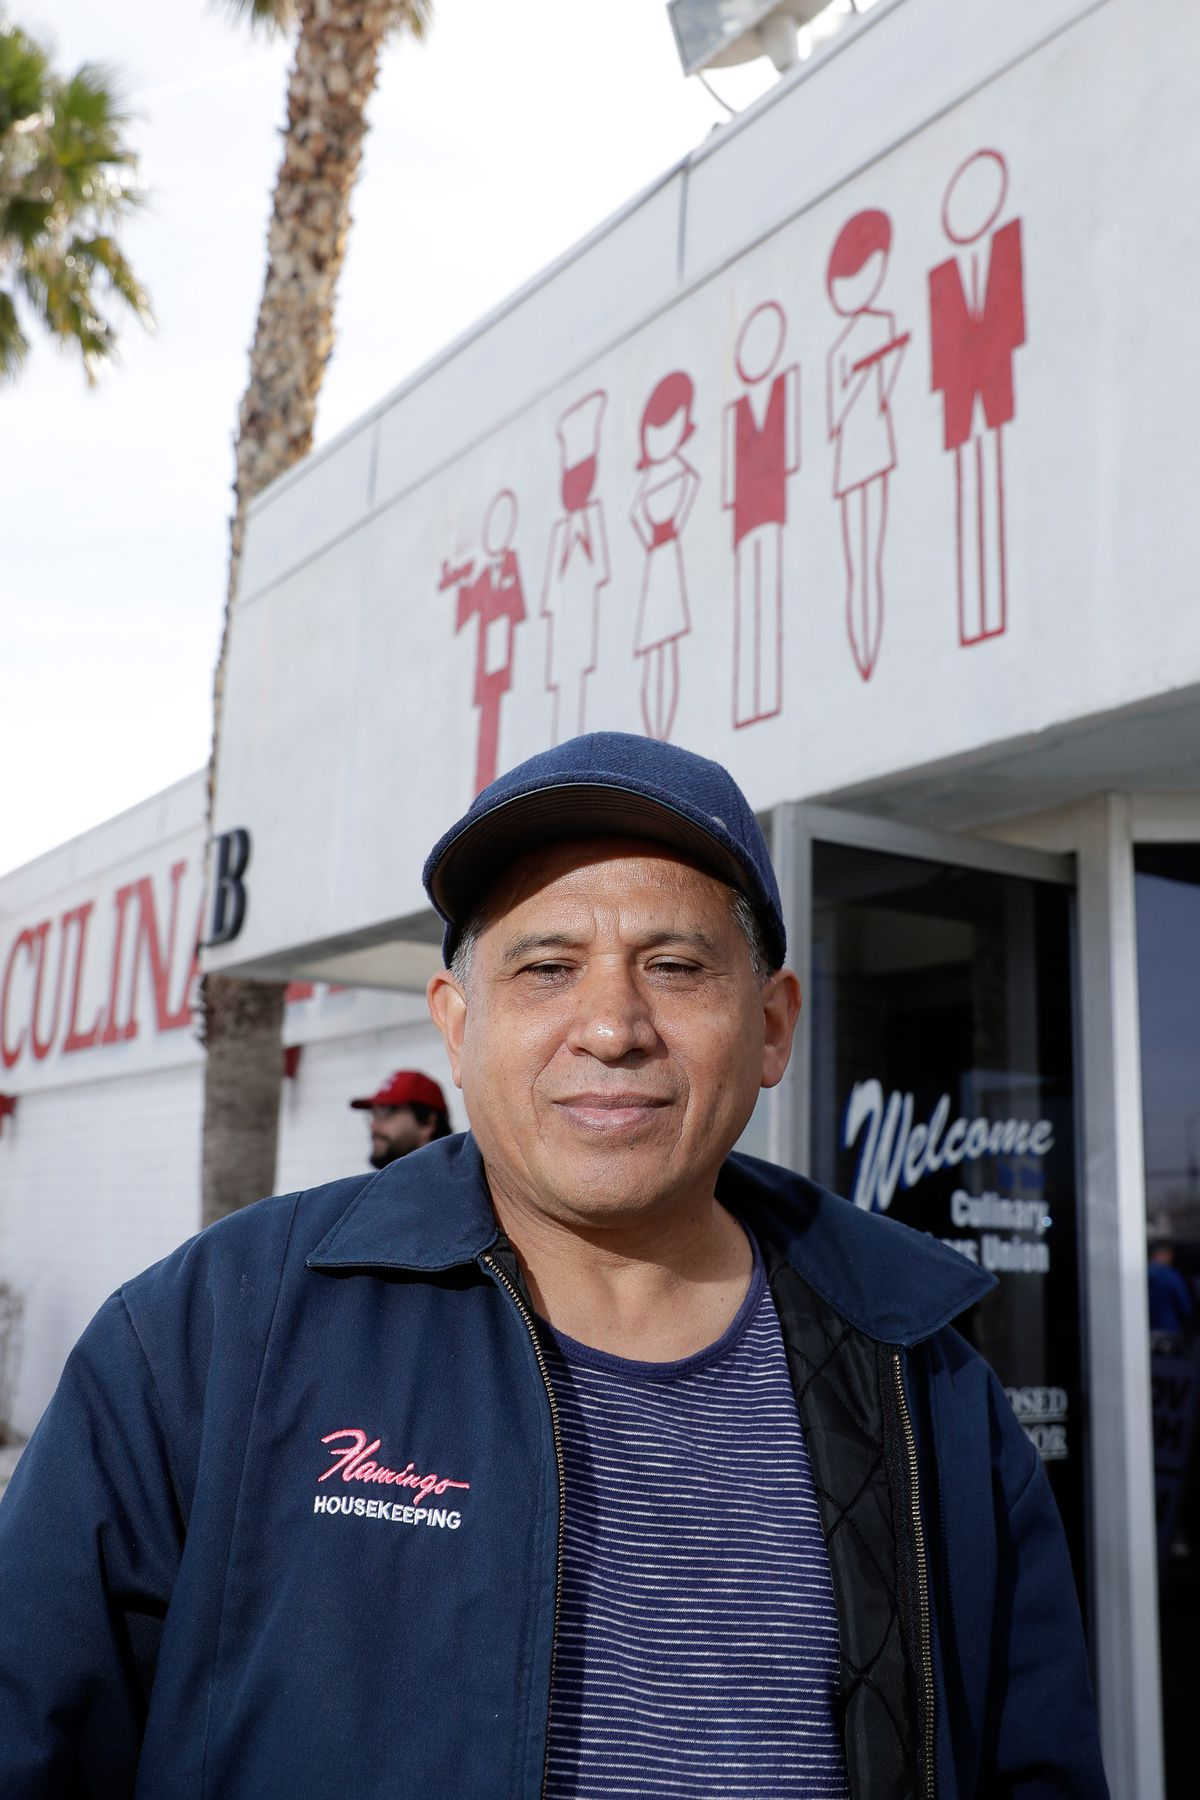 """A man wearing a blue cap and a blue jacket with the logo """"Flamingo housekeeping"""" stands in front of the Culinary Union hall."""